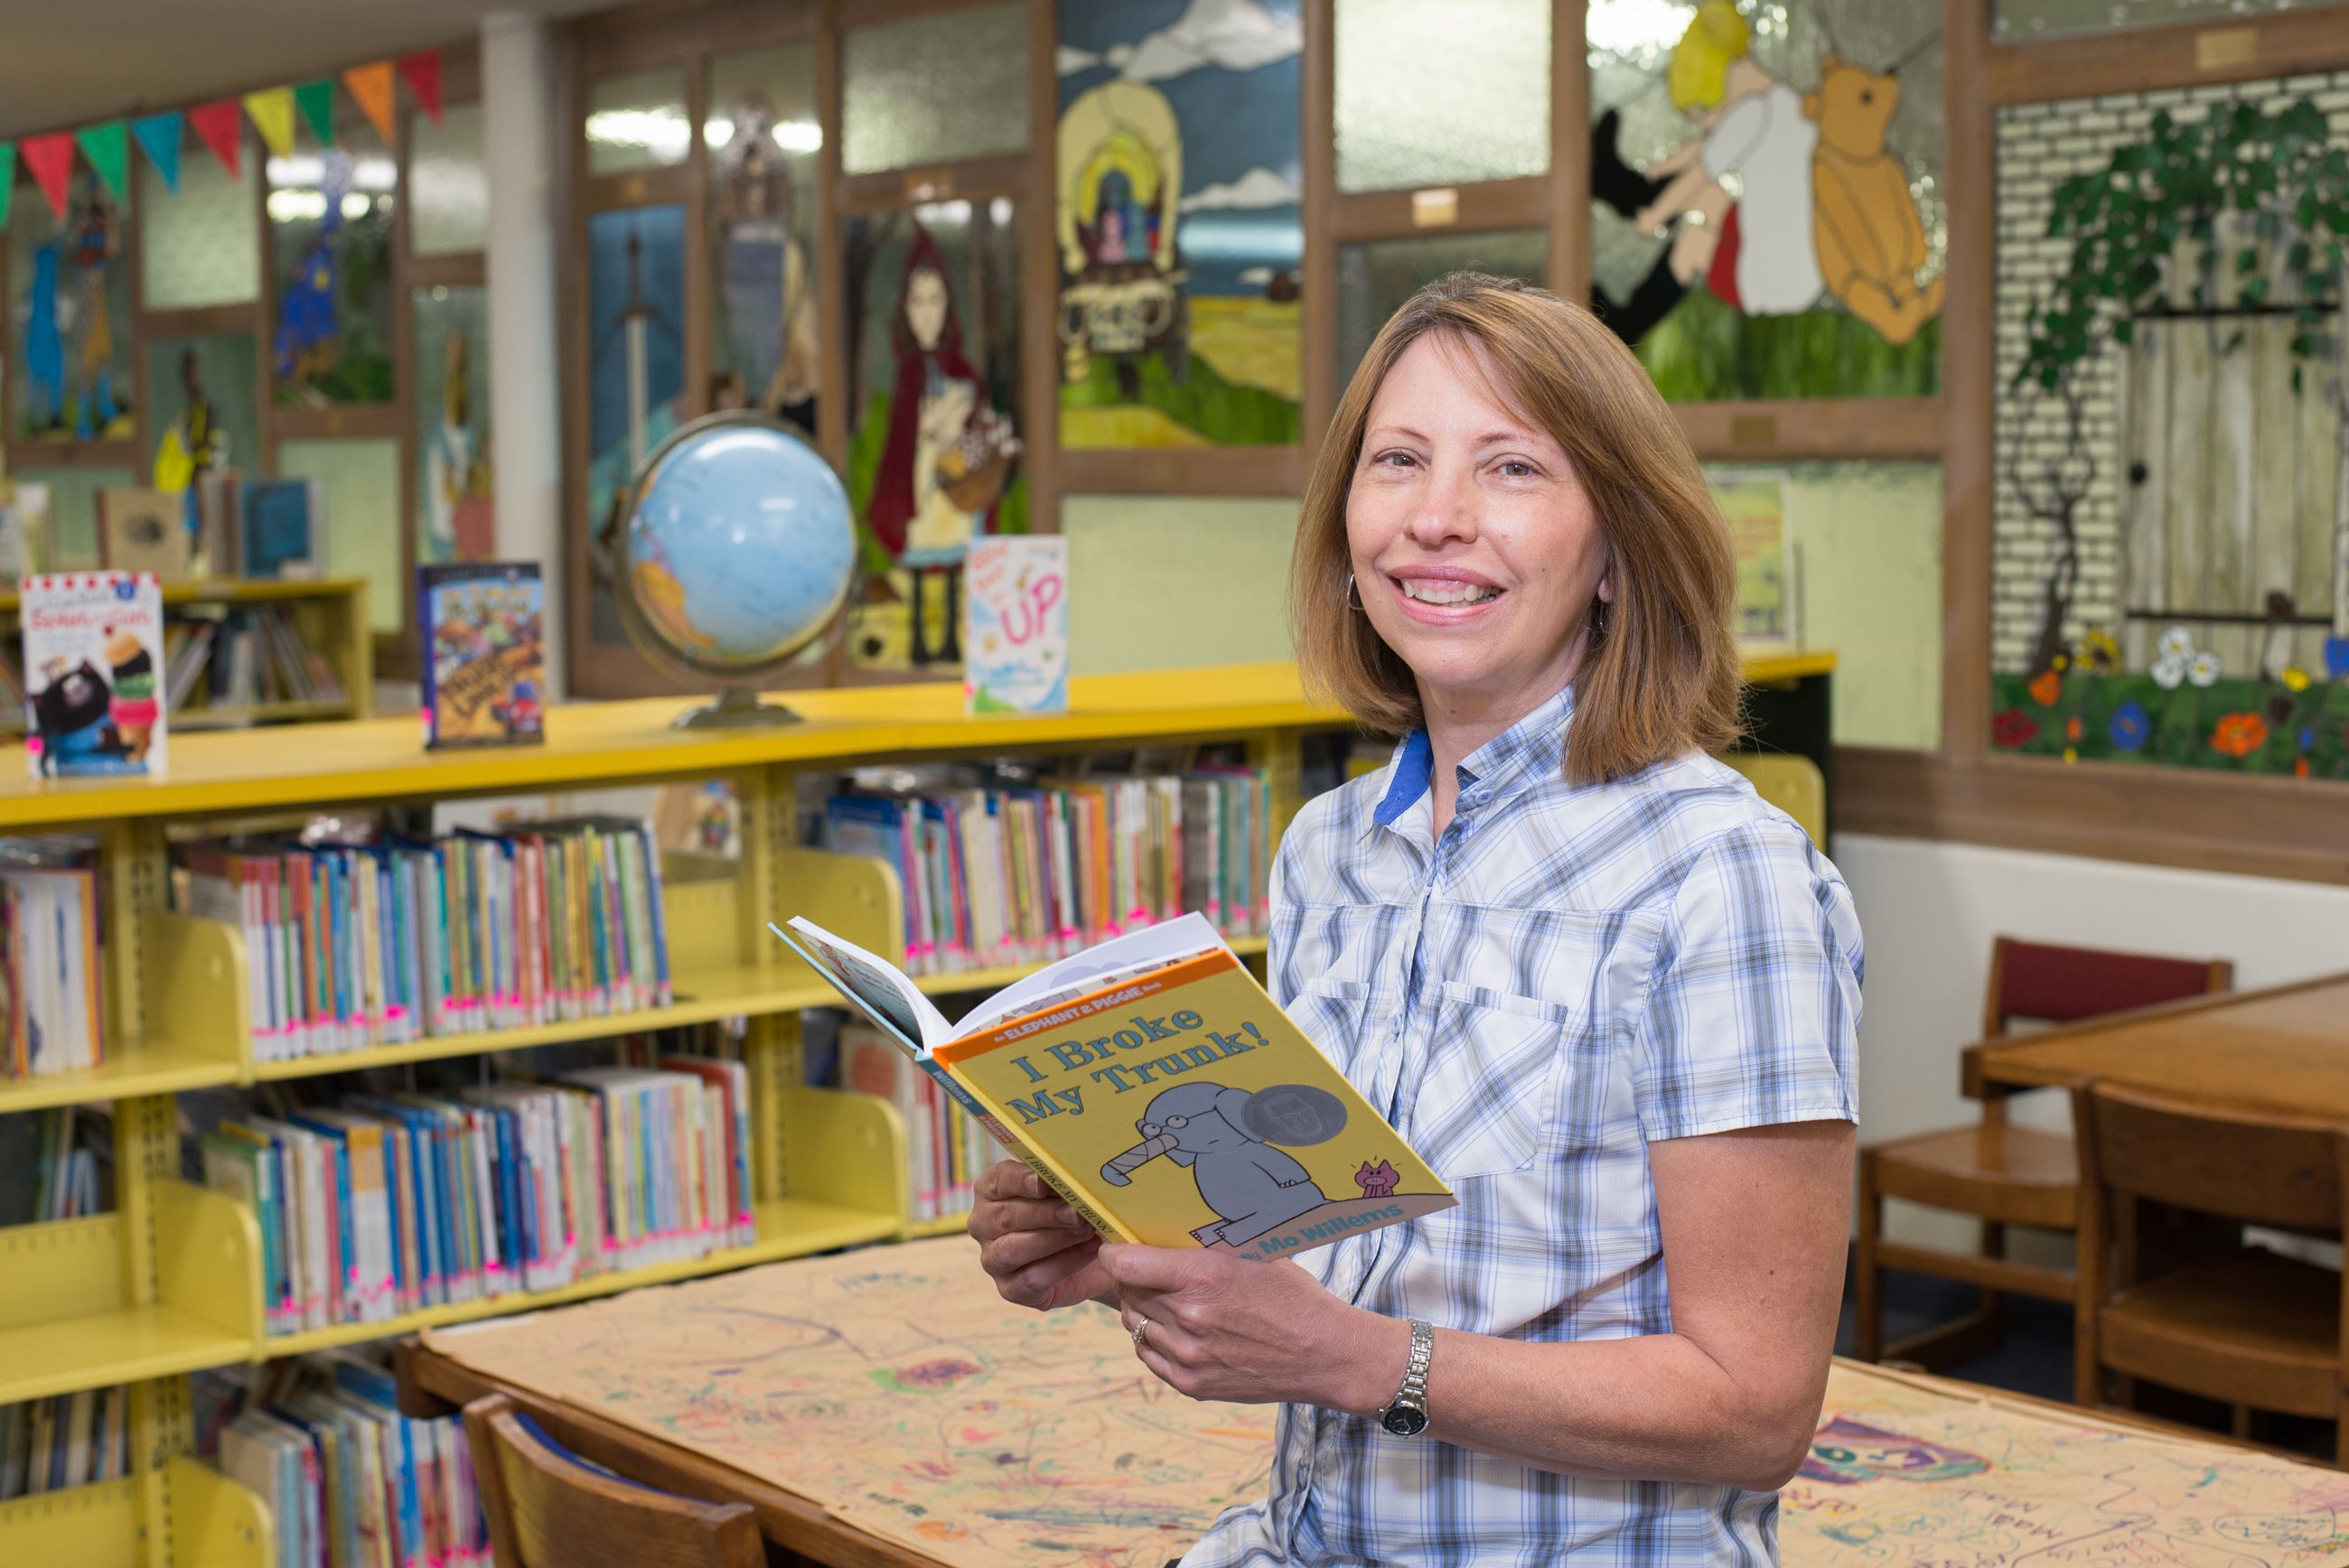 Image of librarian holding children's book